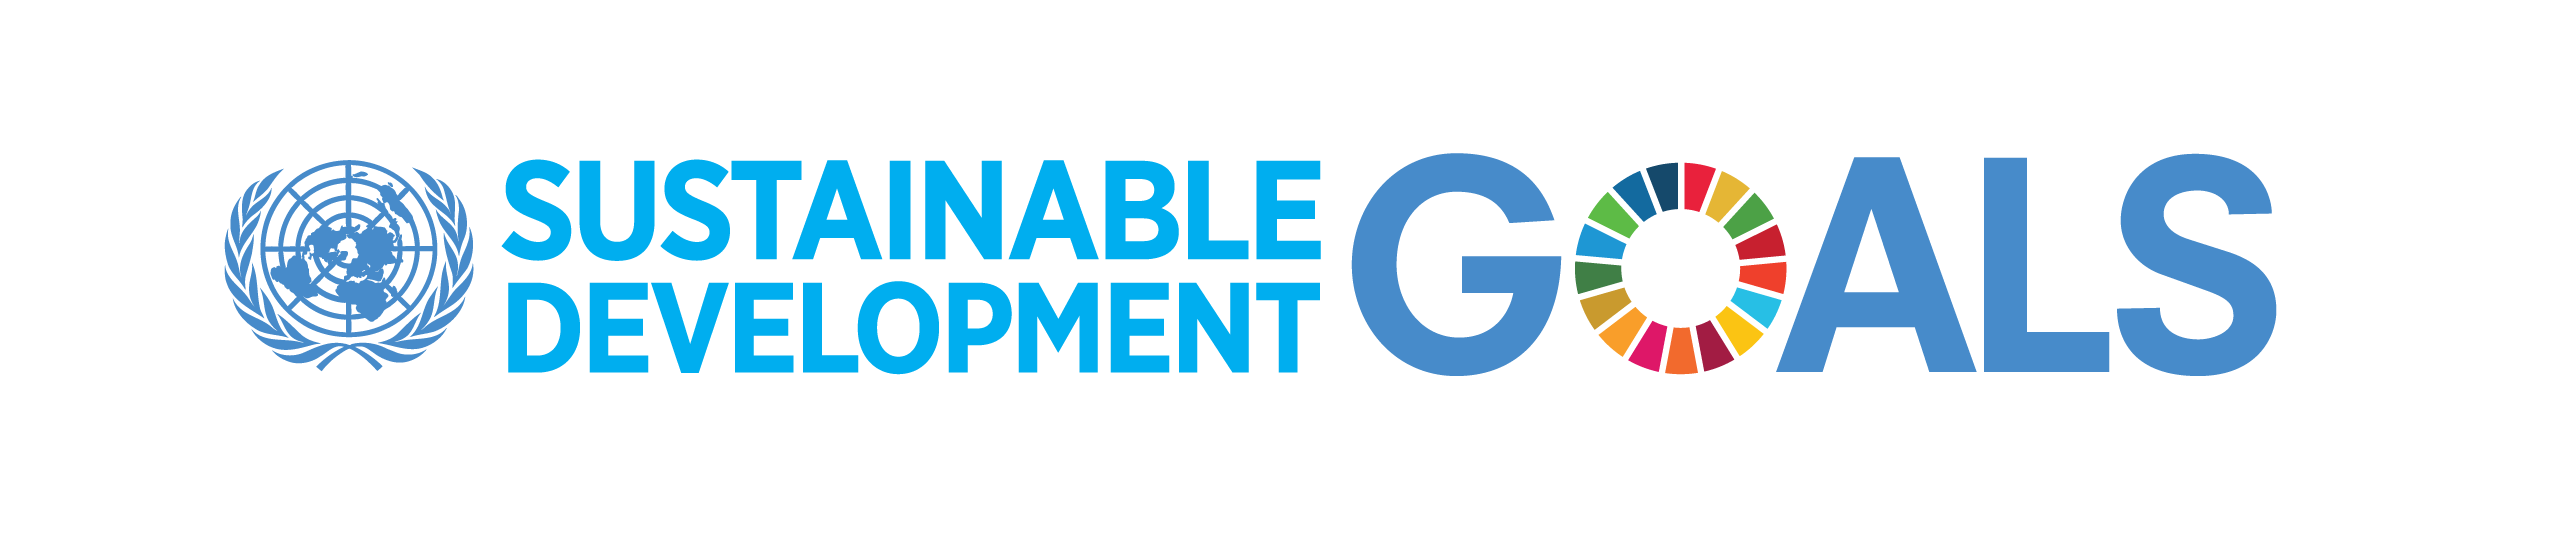 The New UN's Sustainable Development Goals: My Experience ...